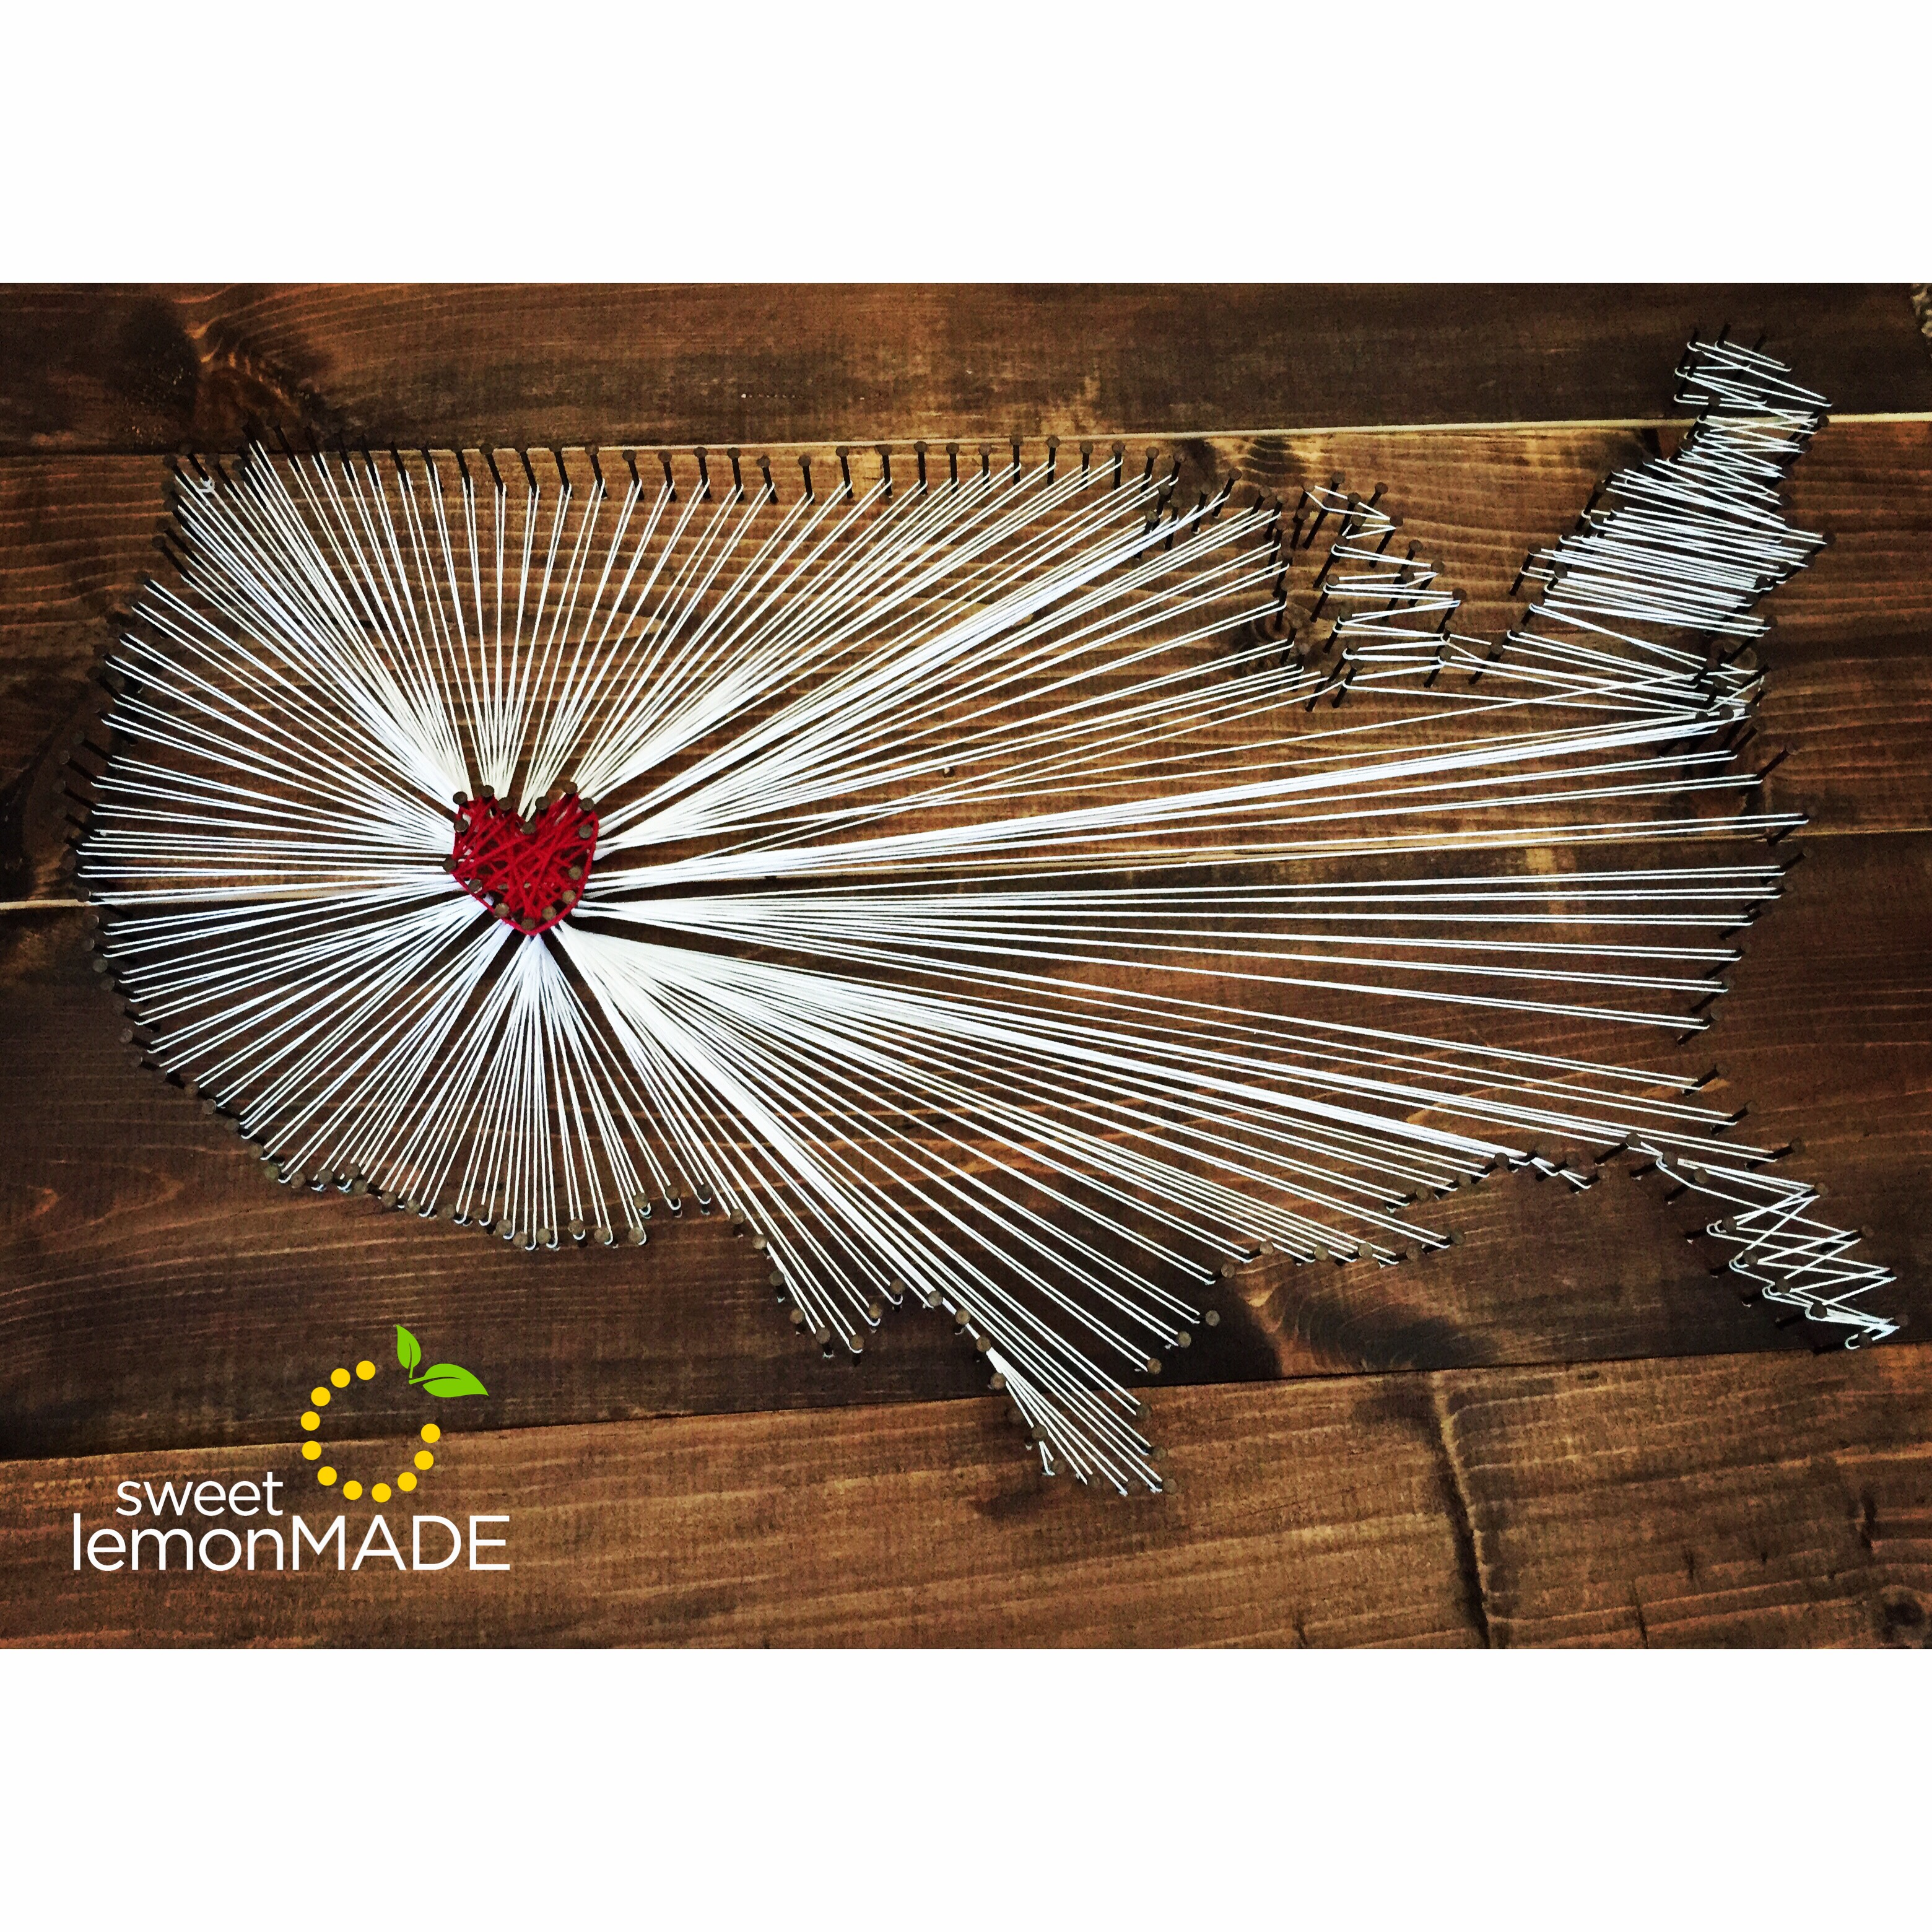 USA String Art sweetlemonmade.com